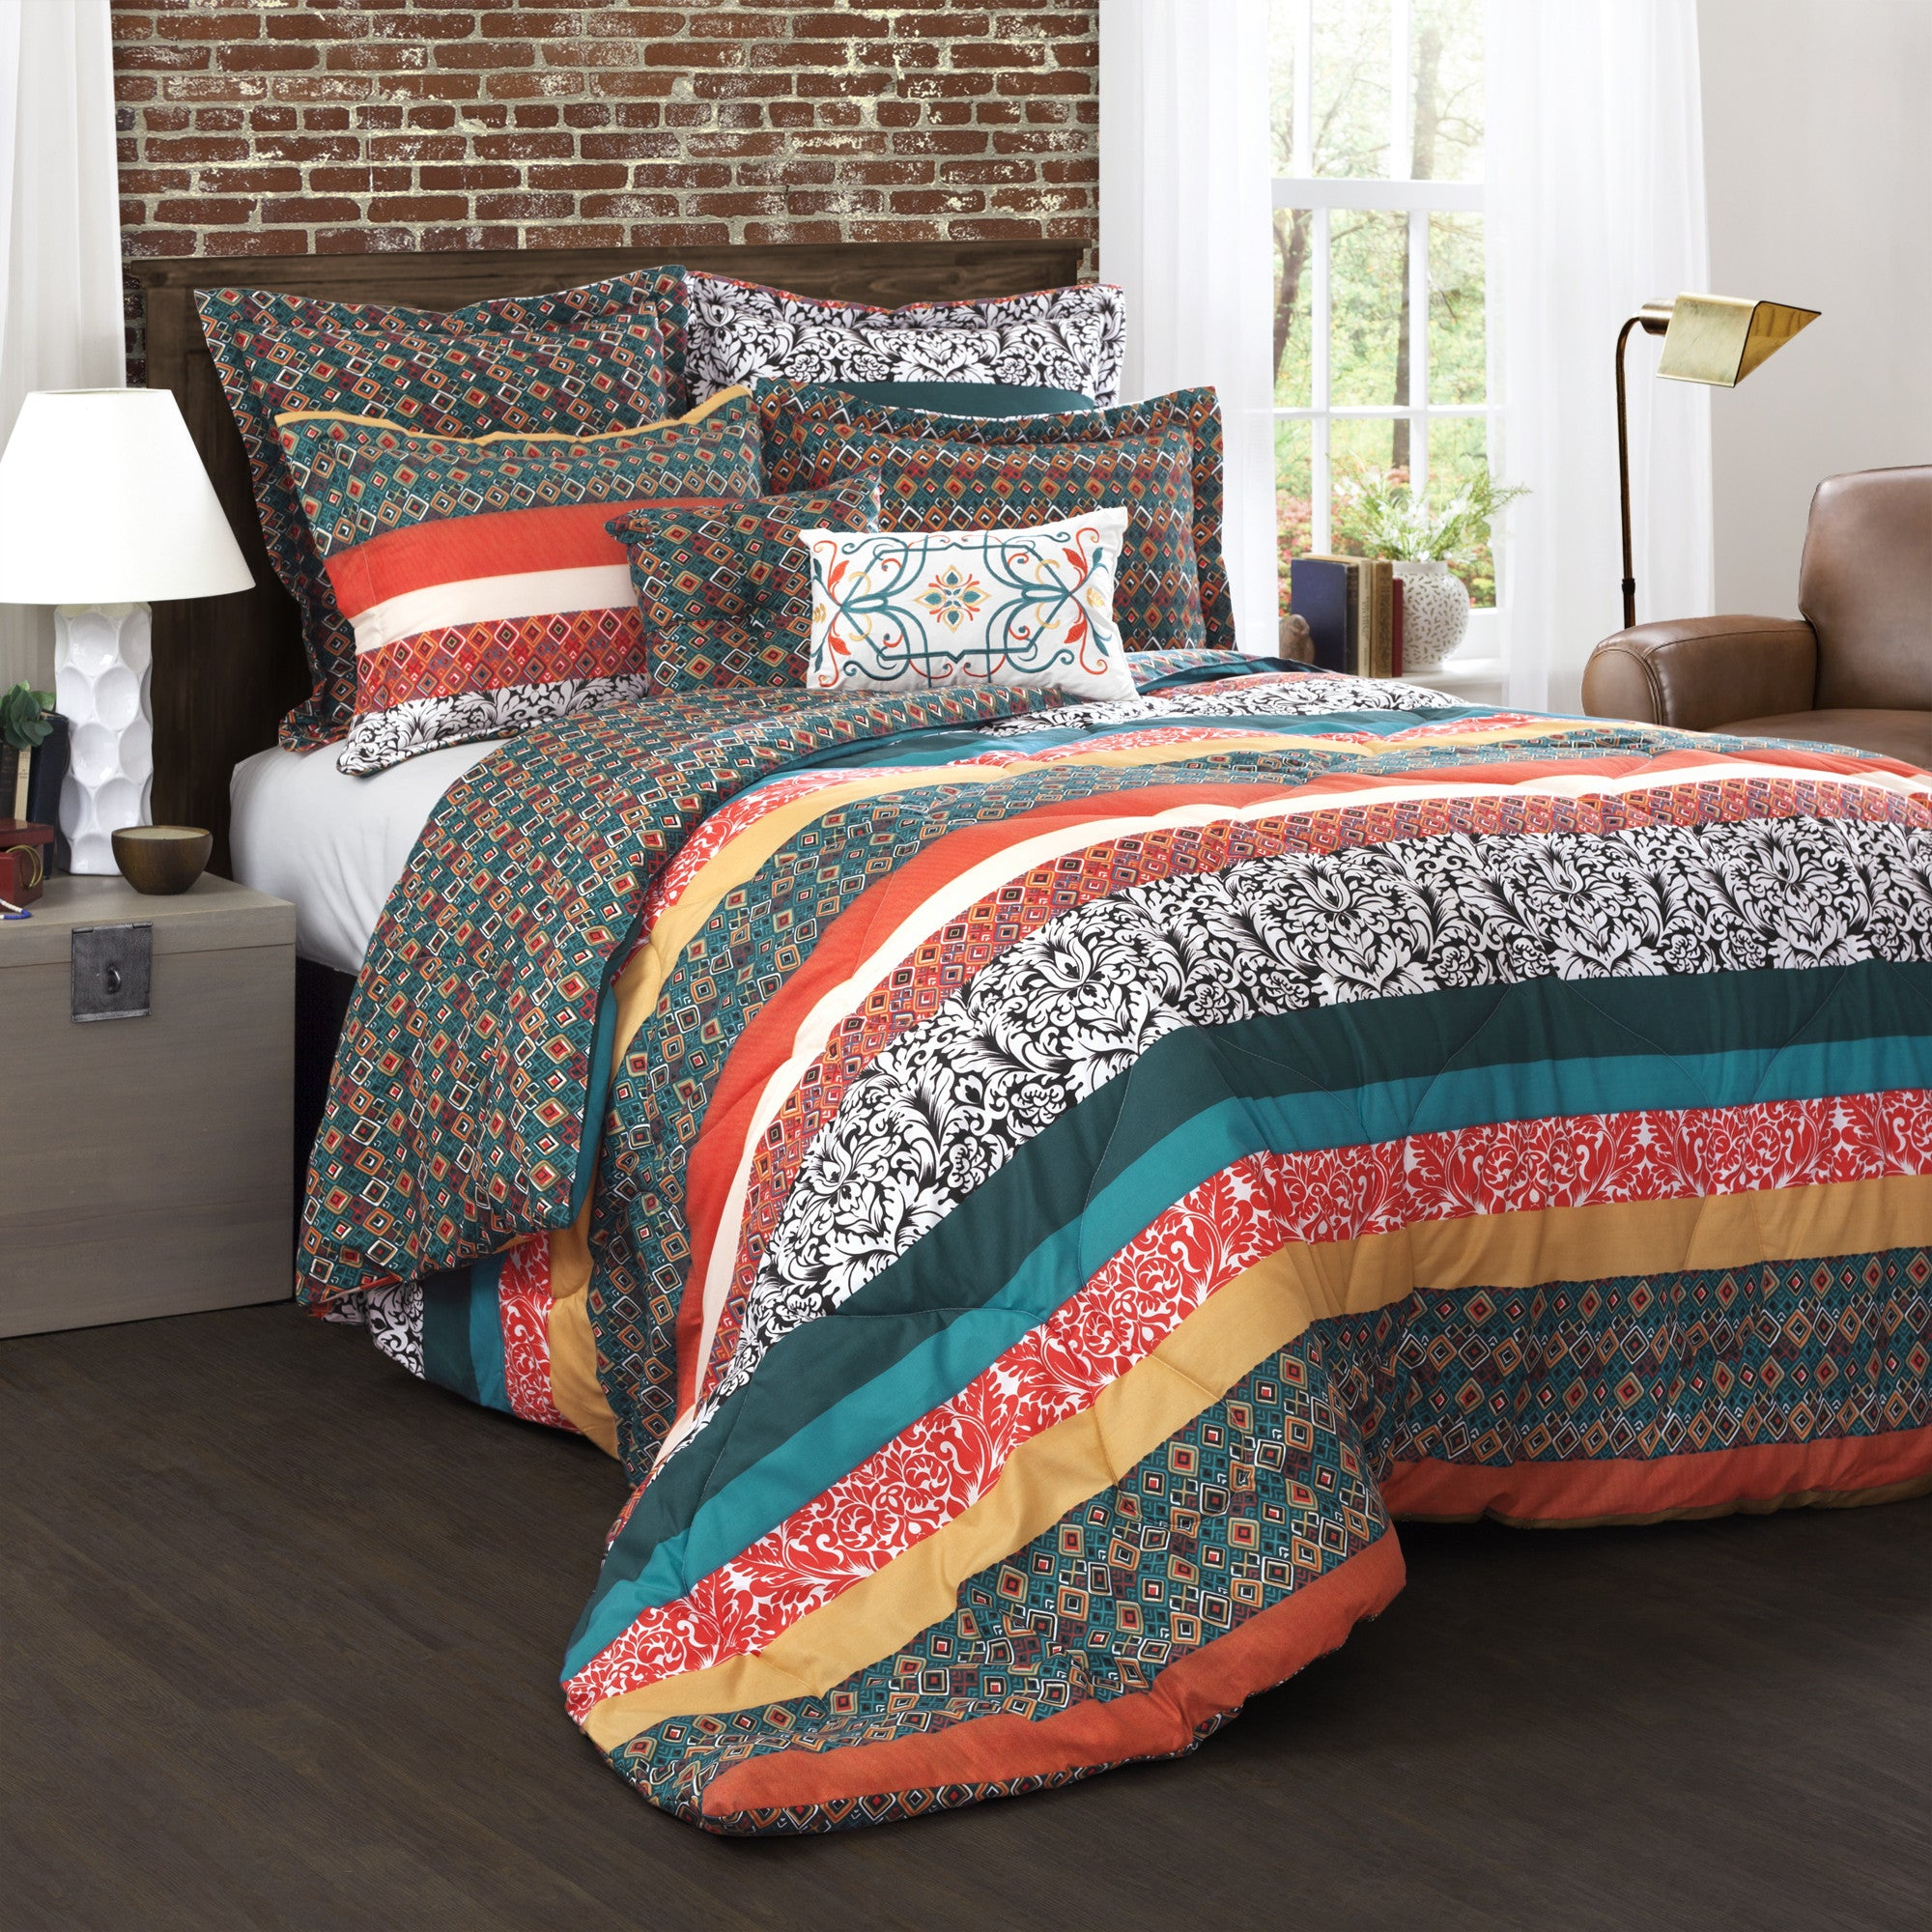 Boho Stripe 7 Piece Comforter Set Lush Decor Www Lushdecor Com Lushdecor